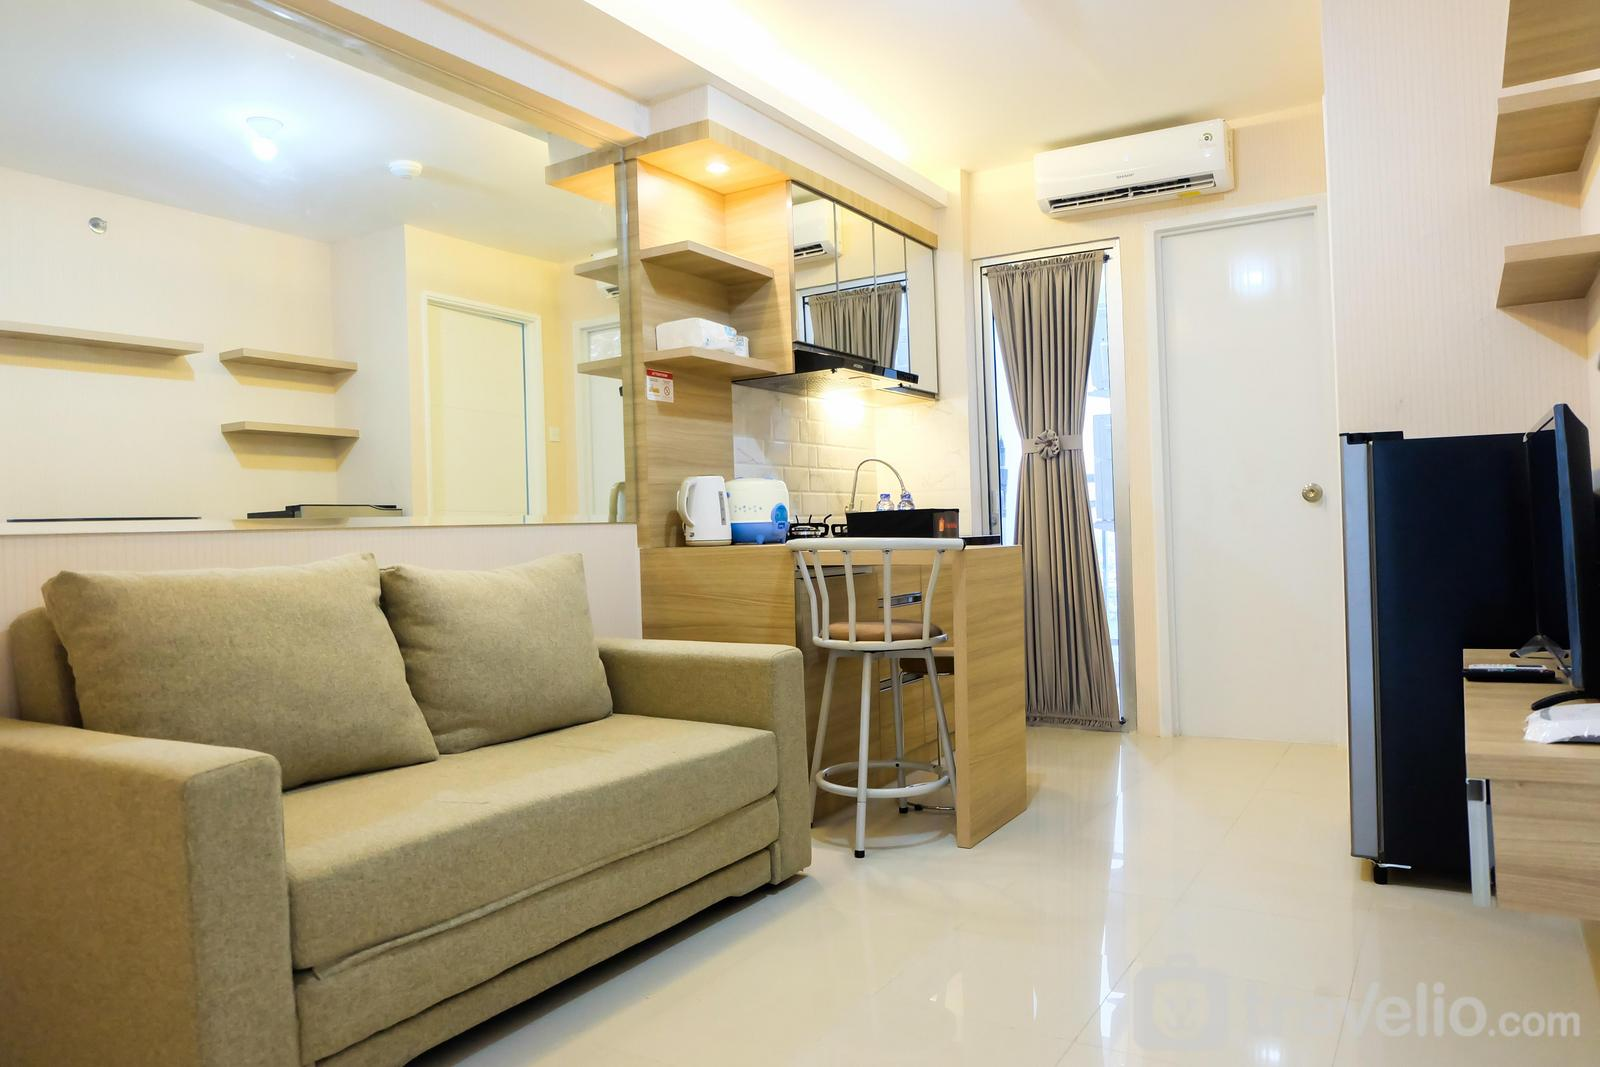 Bassura City Cipinang - Clean 2BR Bassura City Apartment By Travelio